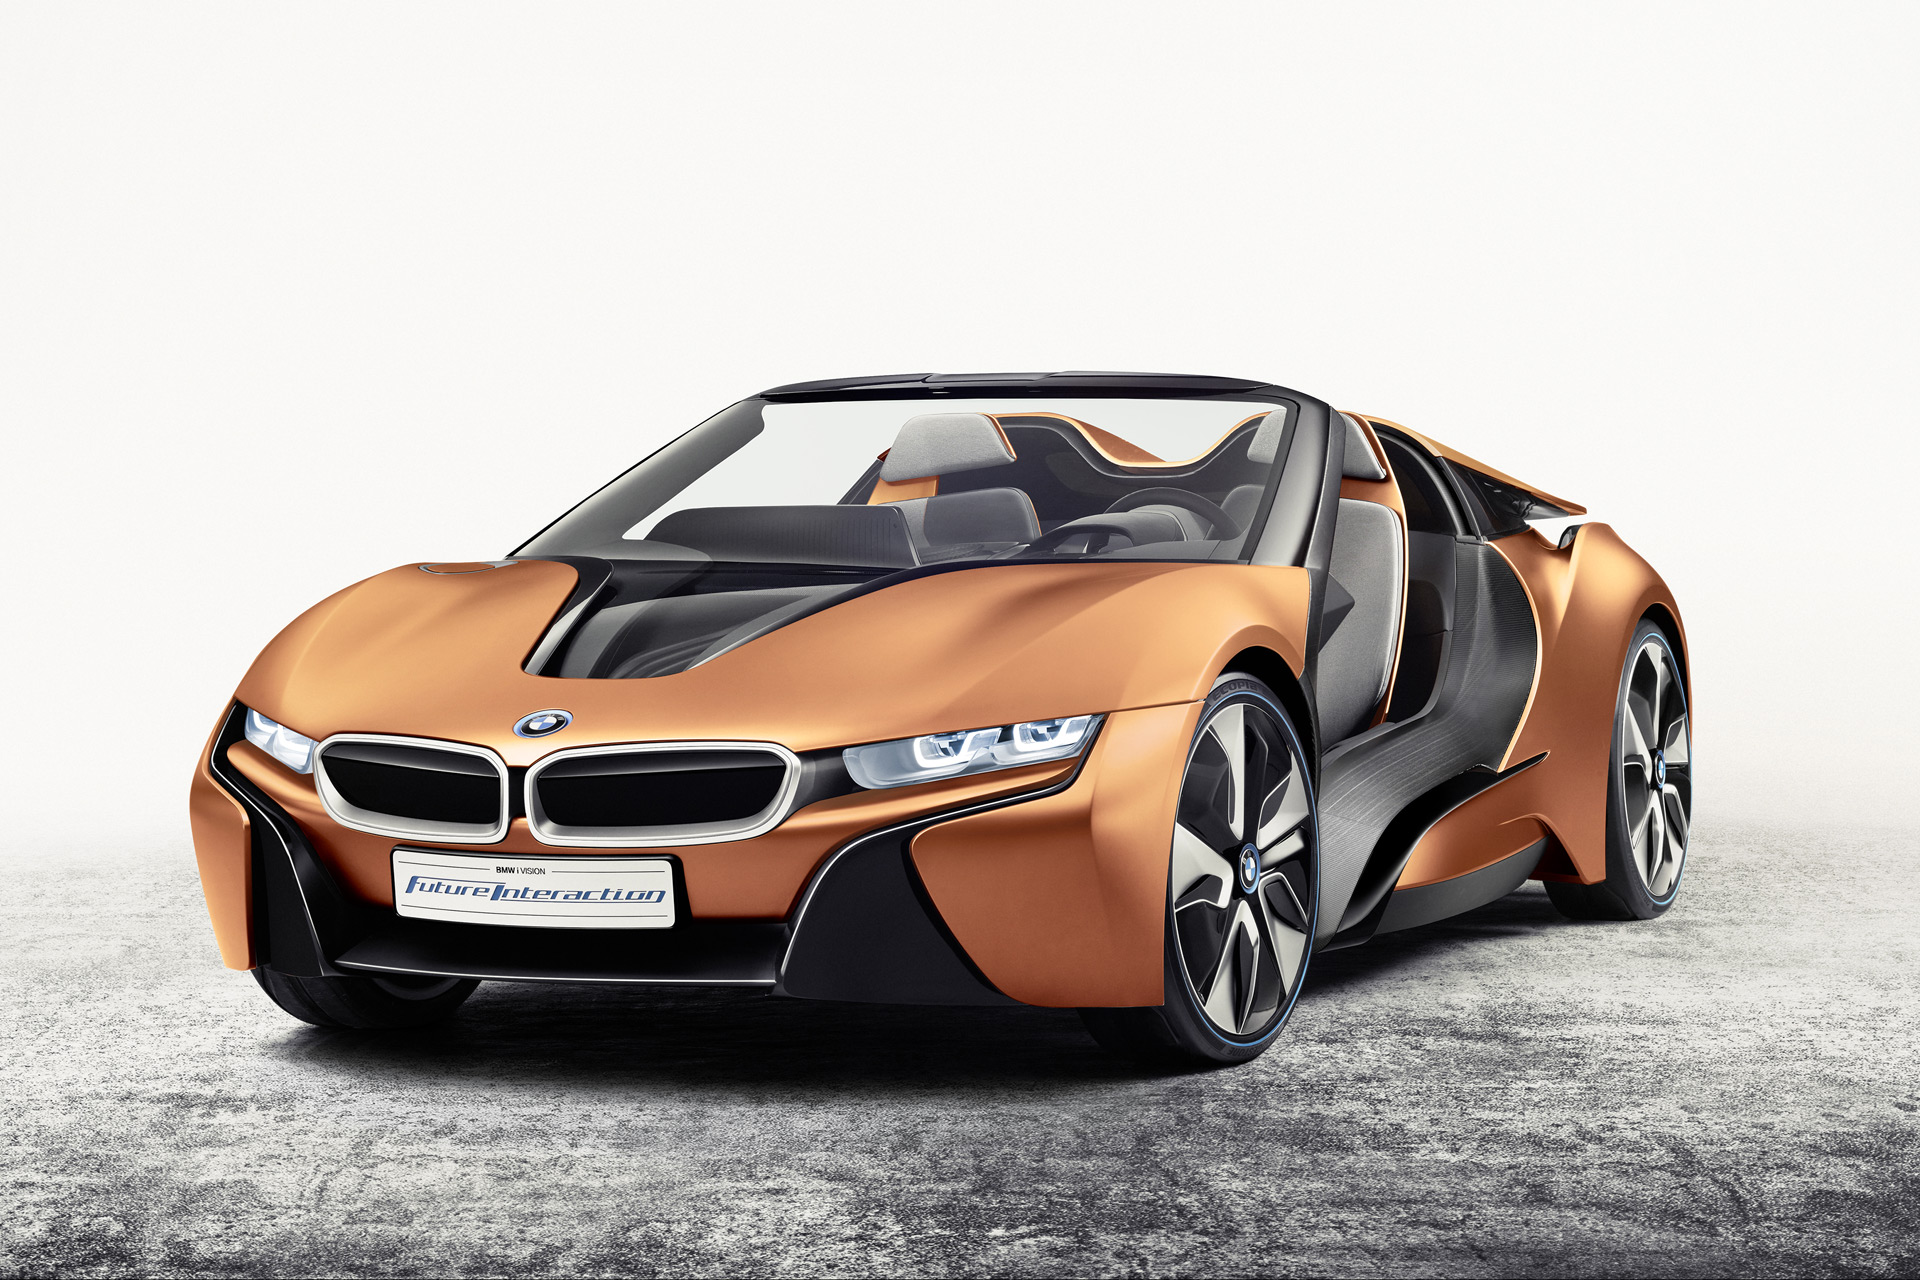 BMW I8 Mpg >> BMW i Future Interaction Concept At CES Hints At i8 Spyder ...